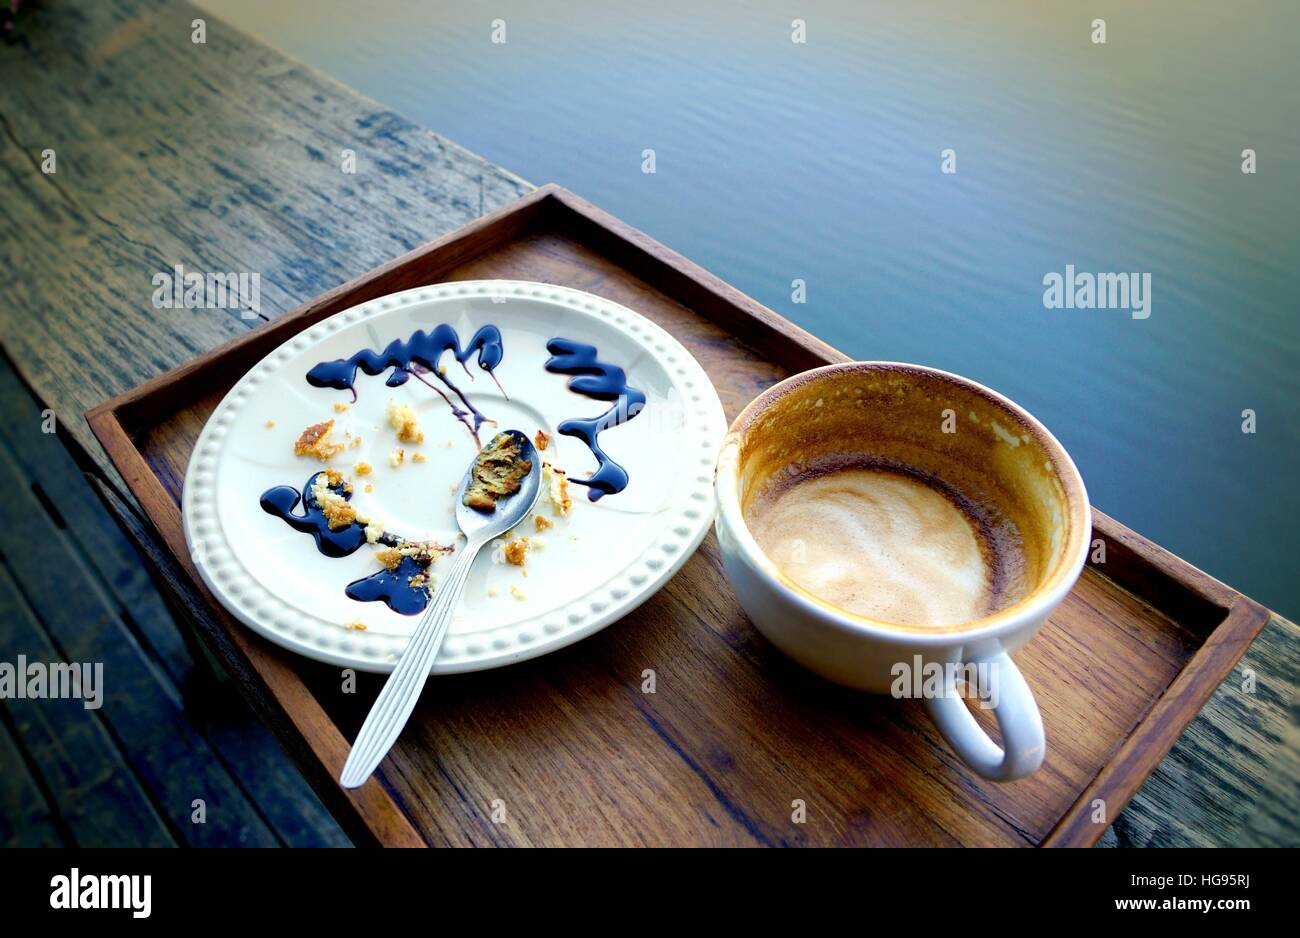 Empty coffee cup and white plate with crumbles of eaten cake and used spoon  dirty after finish breakfast. & Empty coffee cup and white plate with crumbles of eaten cake and ...